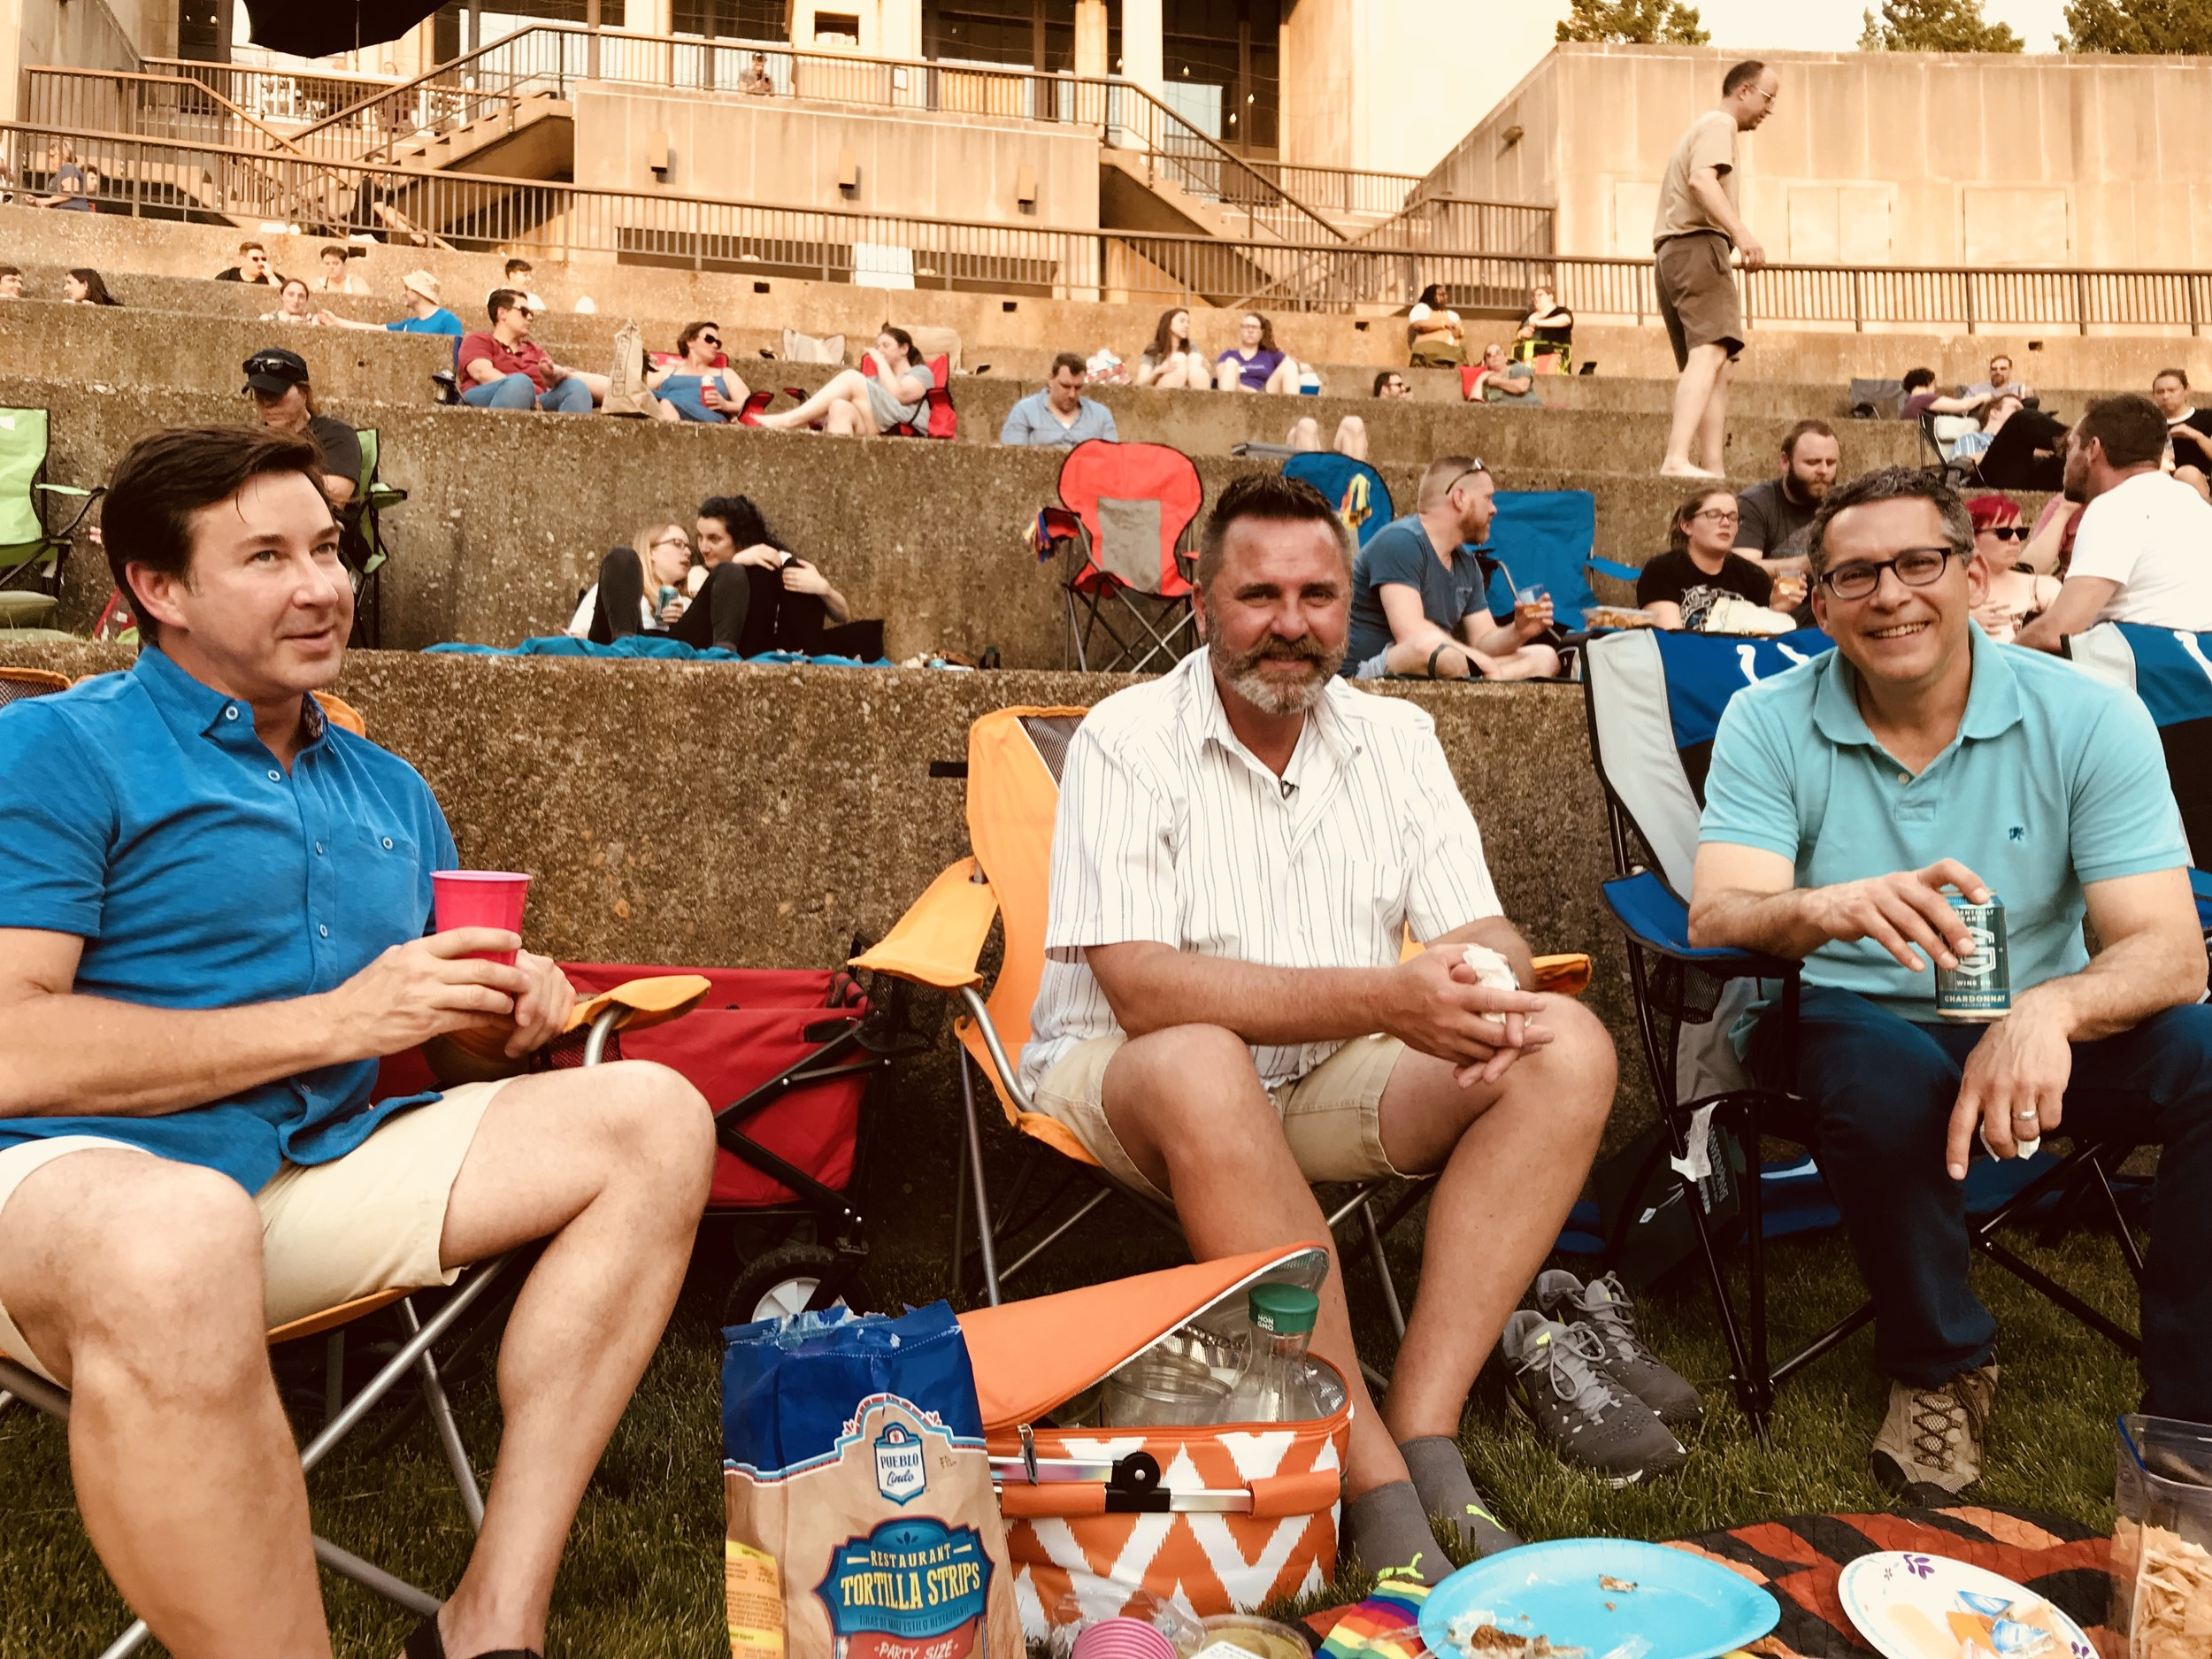 Movies on the terrace at Newfields